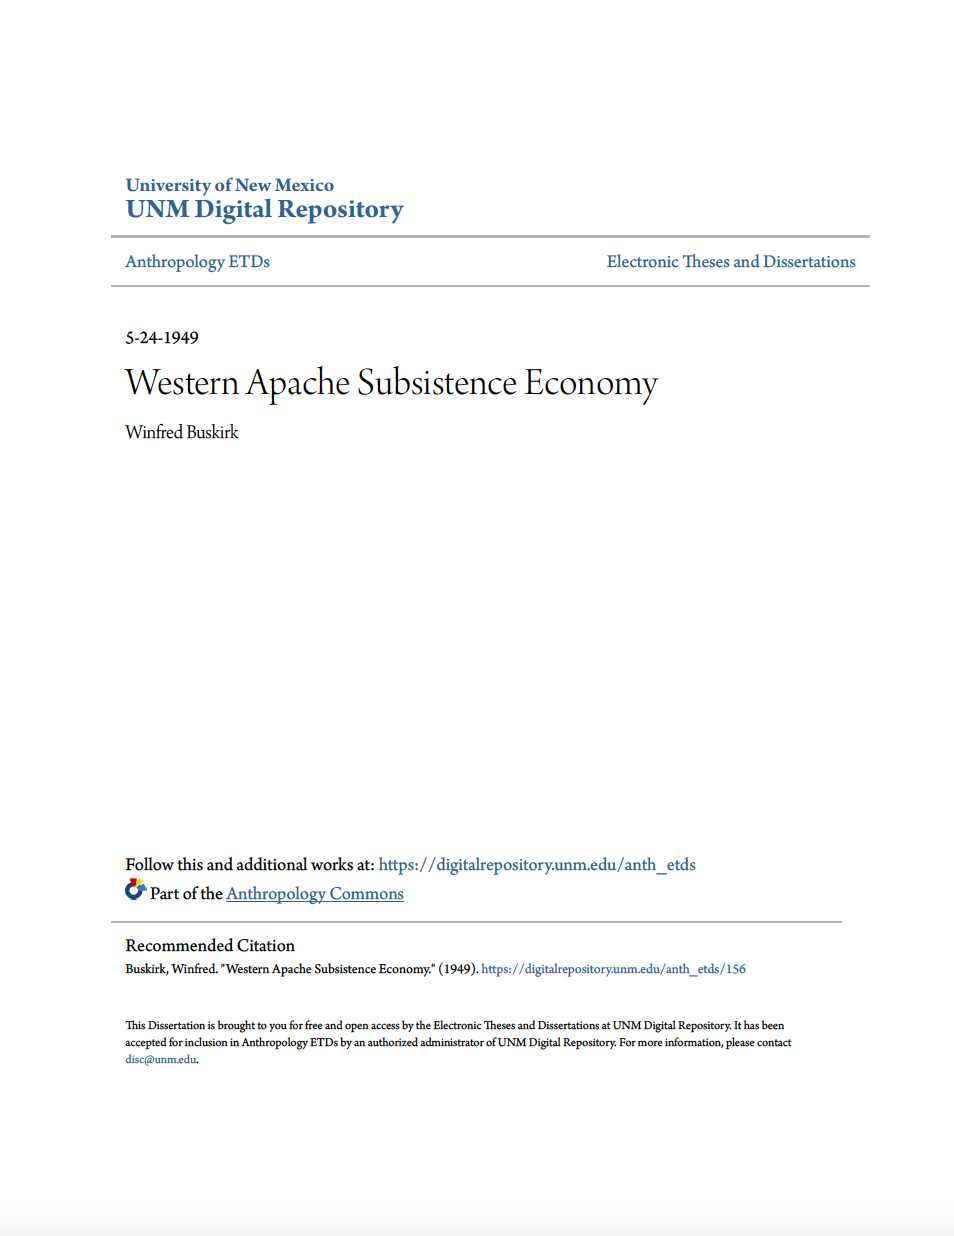 Thumbnail image of document cover: Western Apache Subsistence Economy